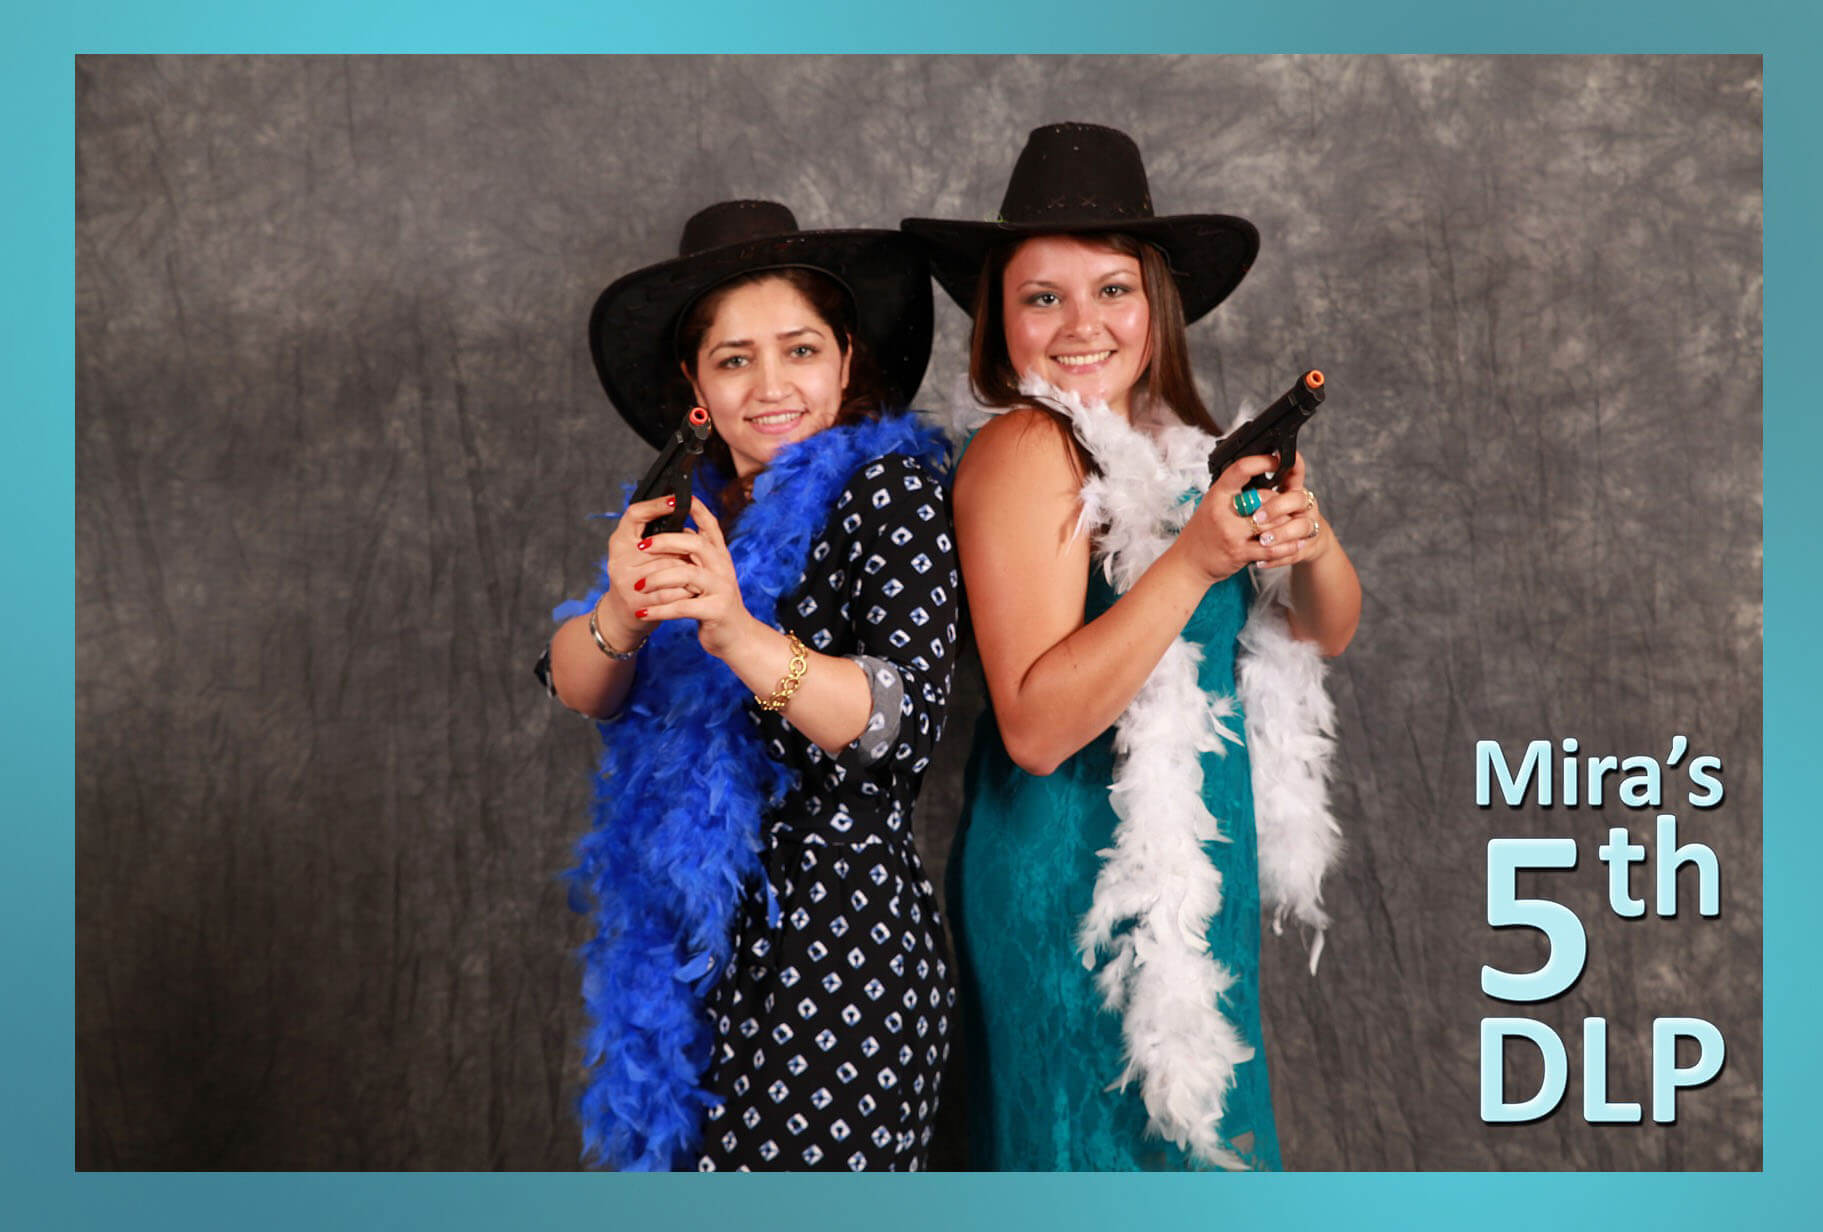 Mira's 5th DLP Photobooth Photos